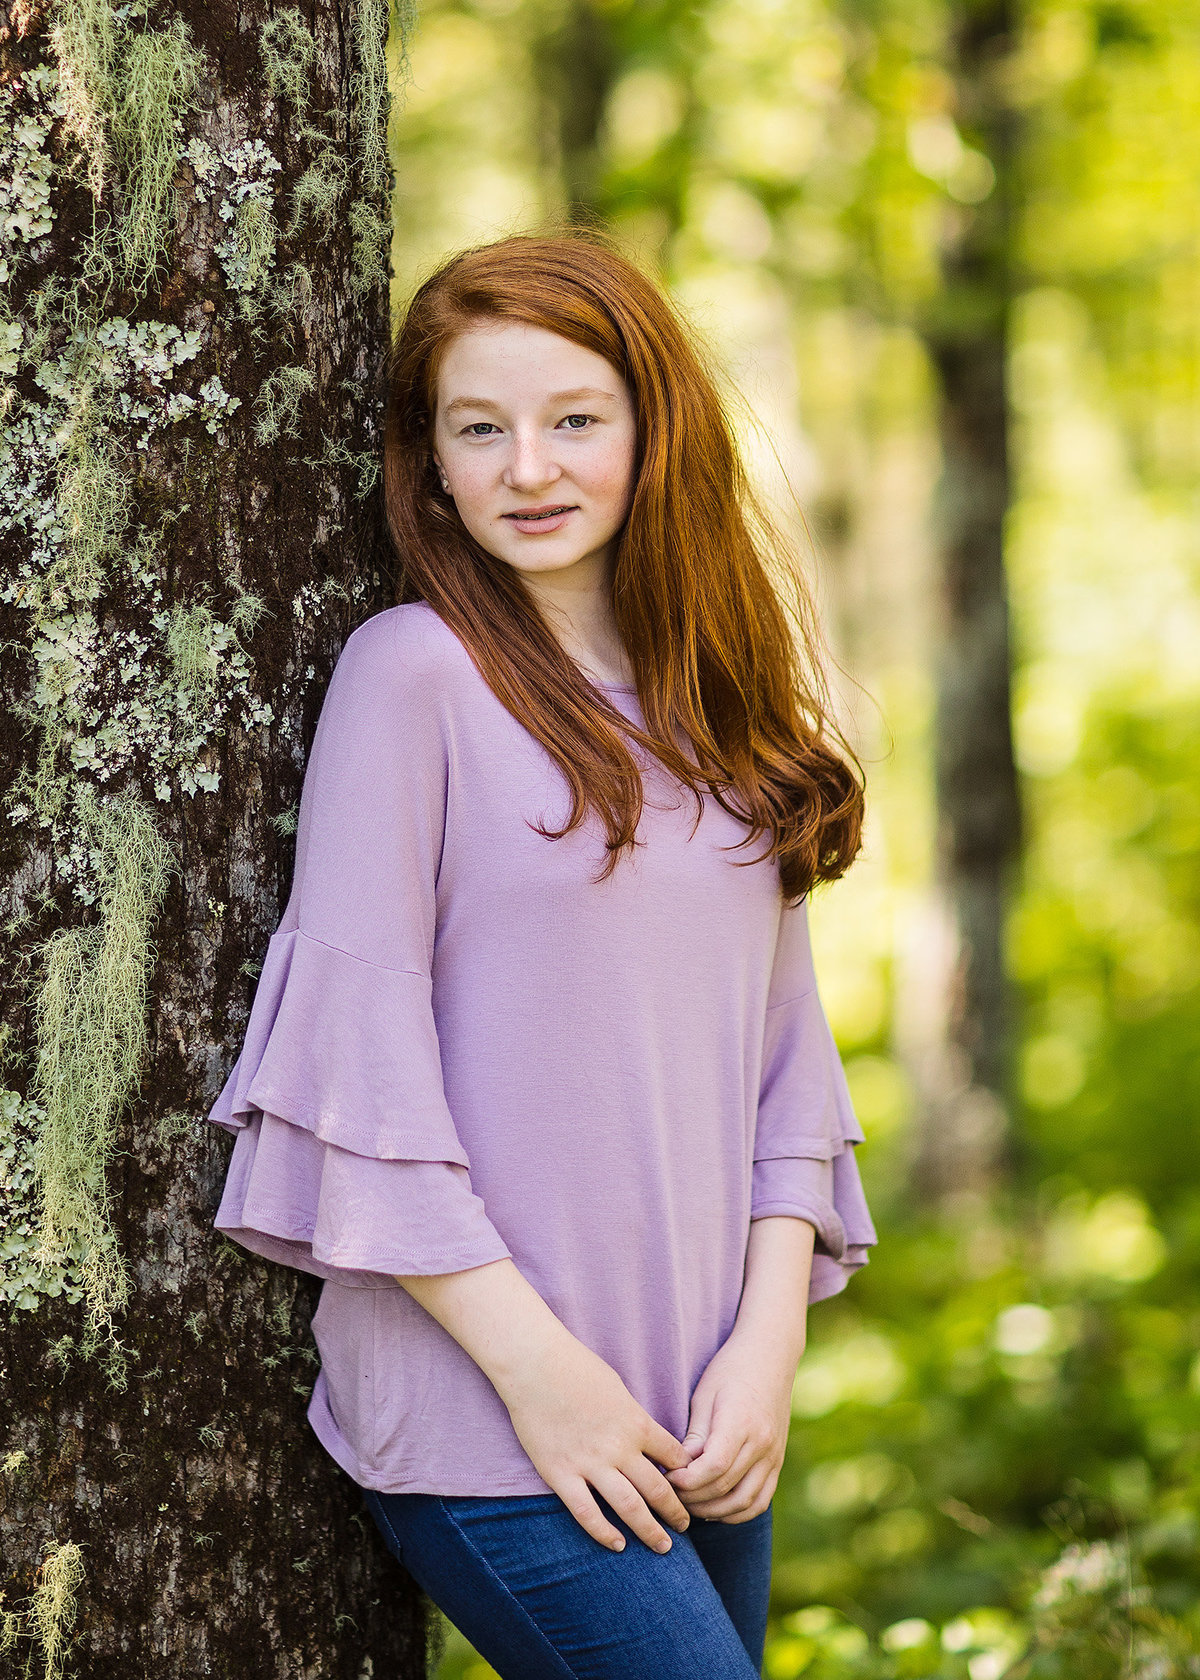 Christy Fassnacht Photography Tweens Teens 2018 8697